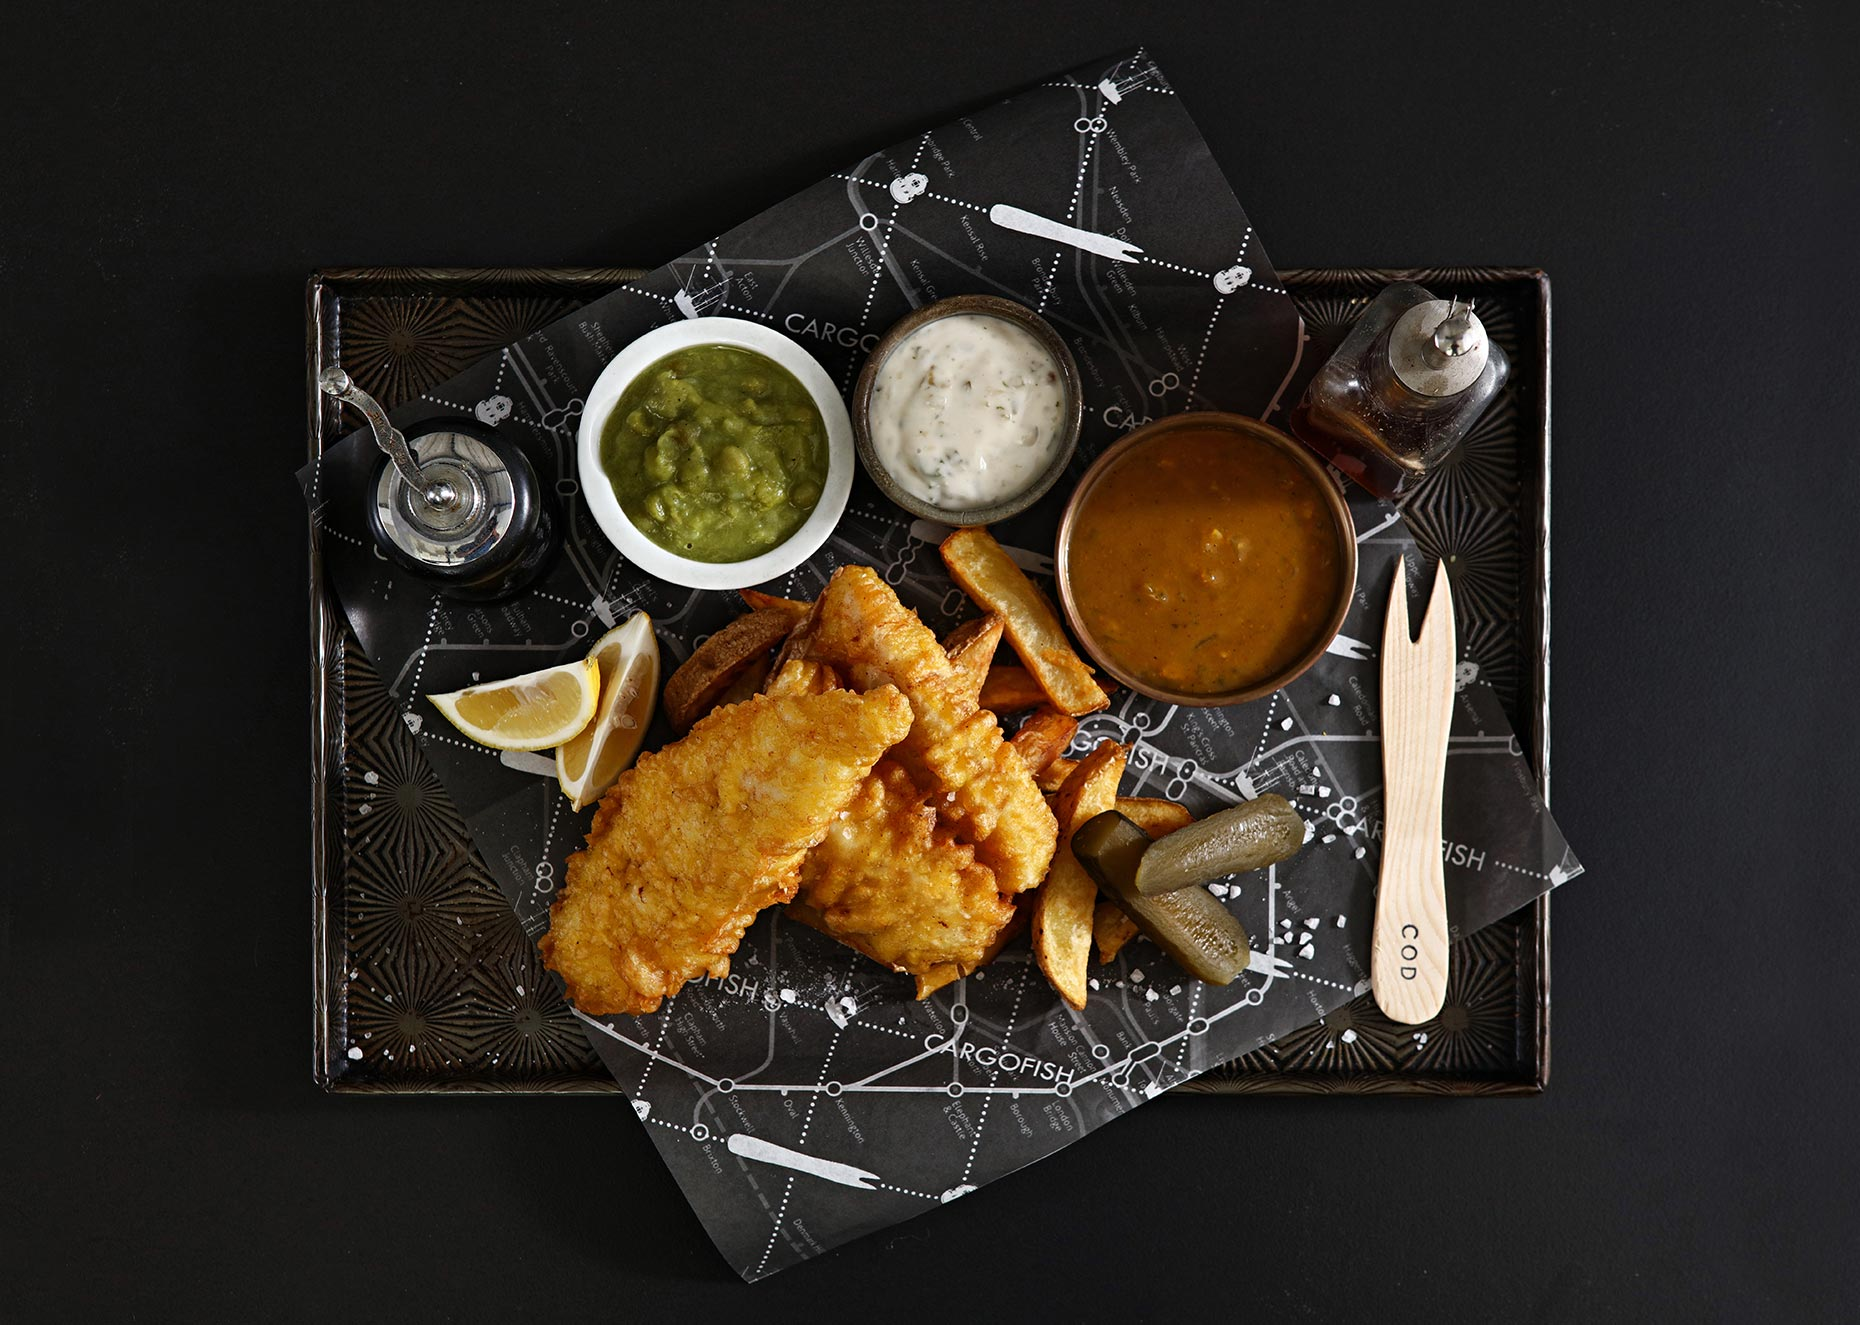 fish and chips tray